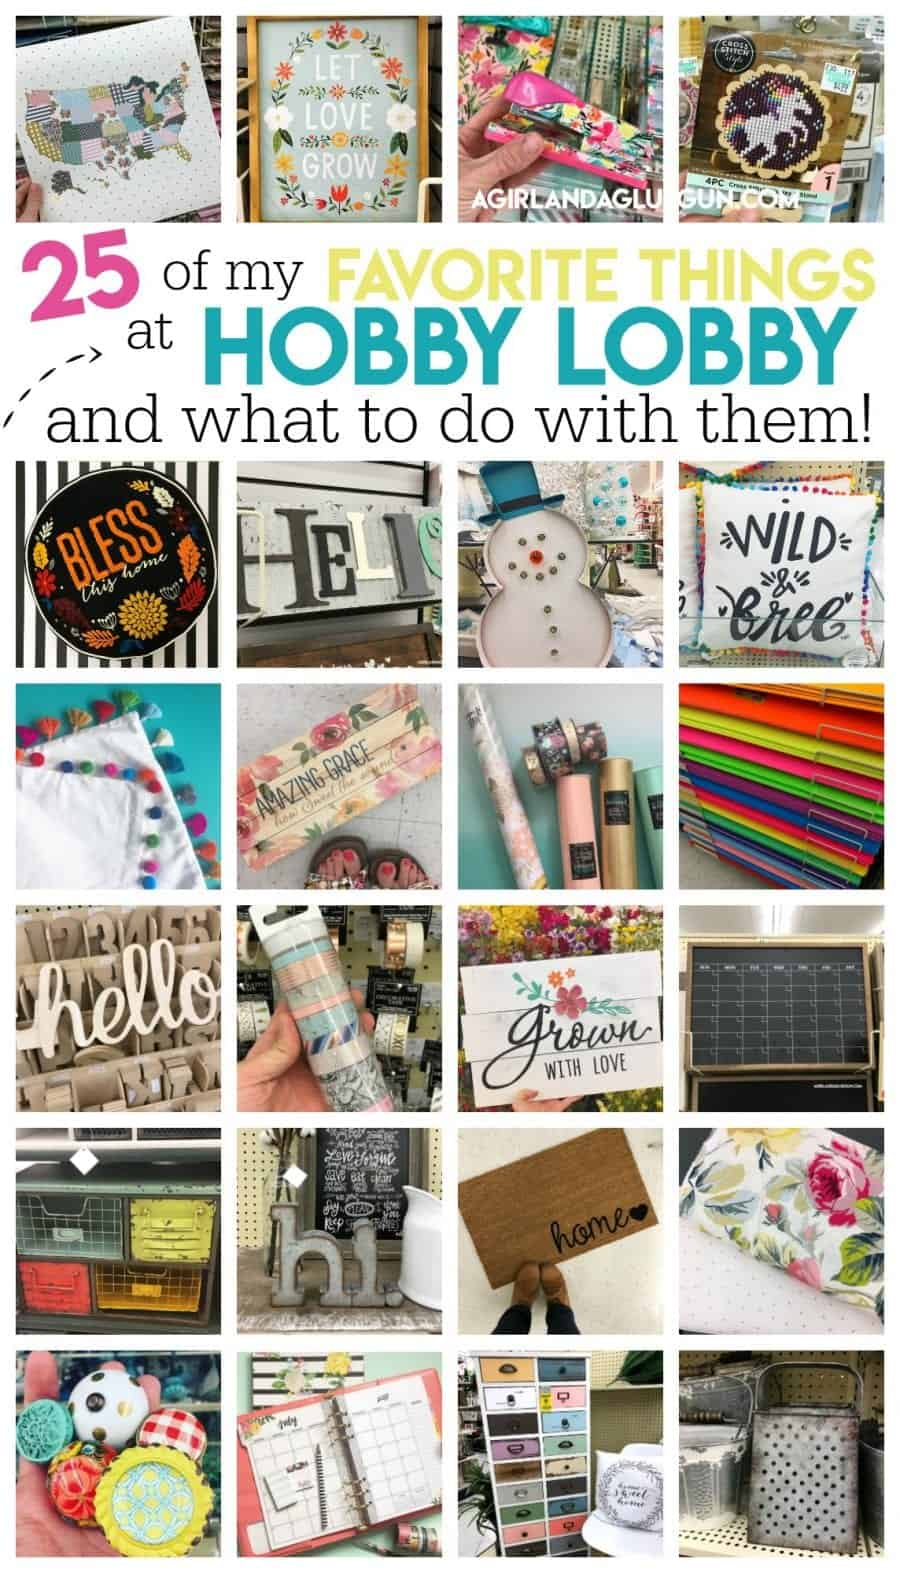 1d534ca24b7f1 ... big that I still stumble upon some awesome finds that I didn t know  were there! So today I thought I would share my top 25 favorite Hobby Lobby  finds!